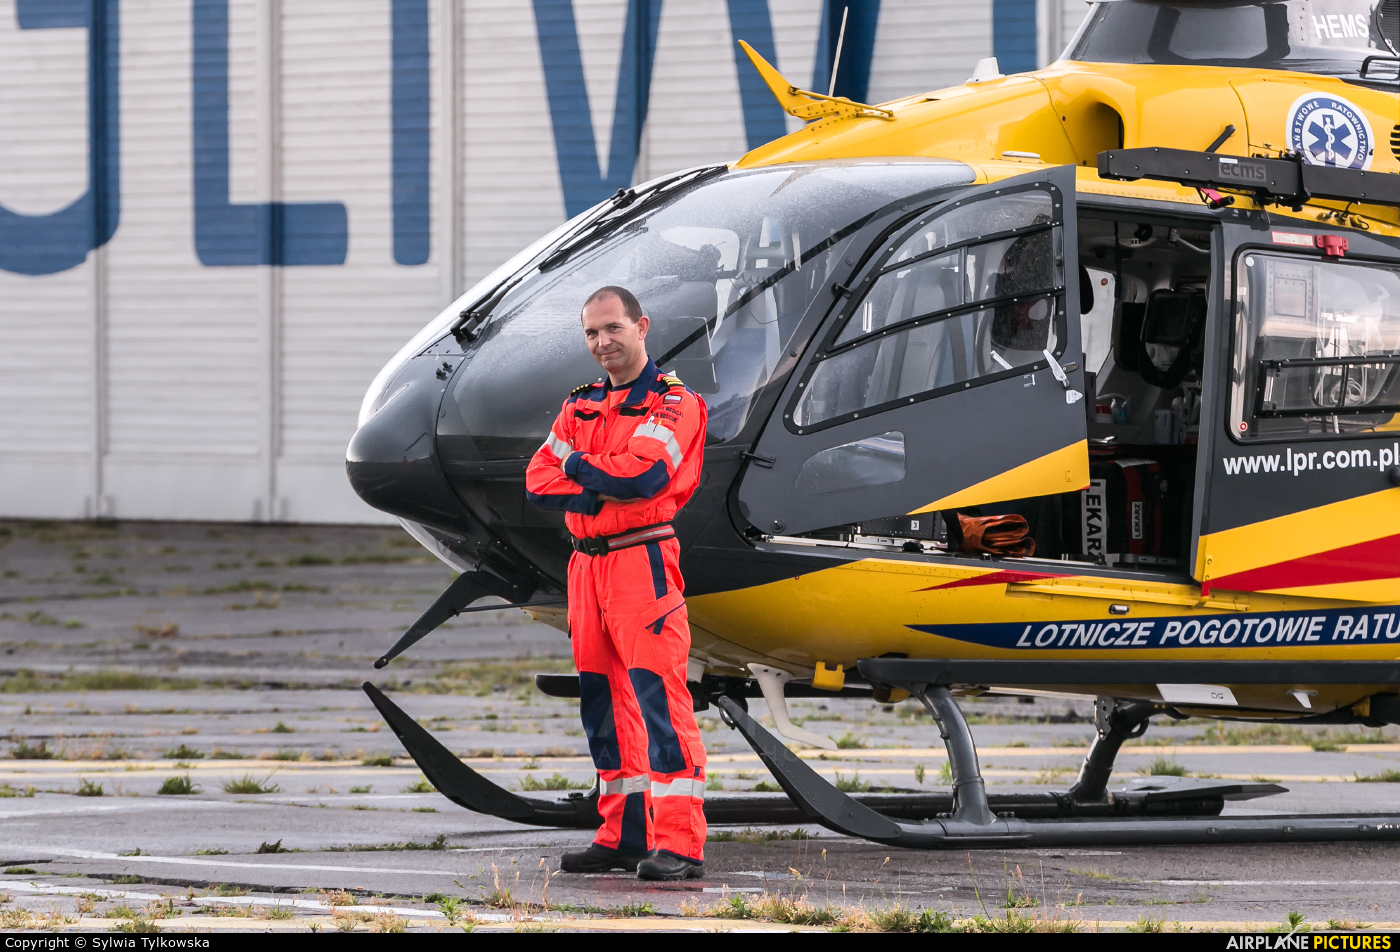 Polish Medical Air Rescue - Lotnicze Pogotowie Ratunkowe - aircraft at Gliwice